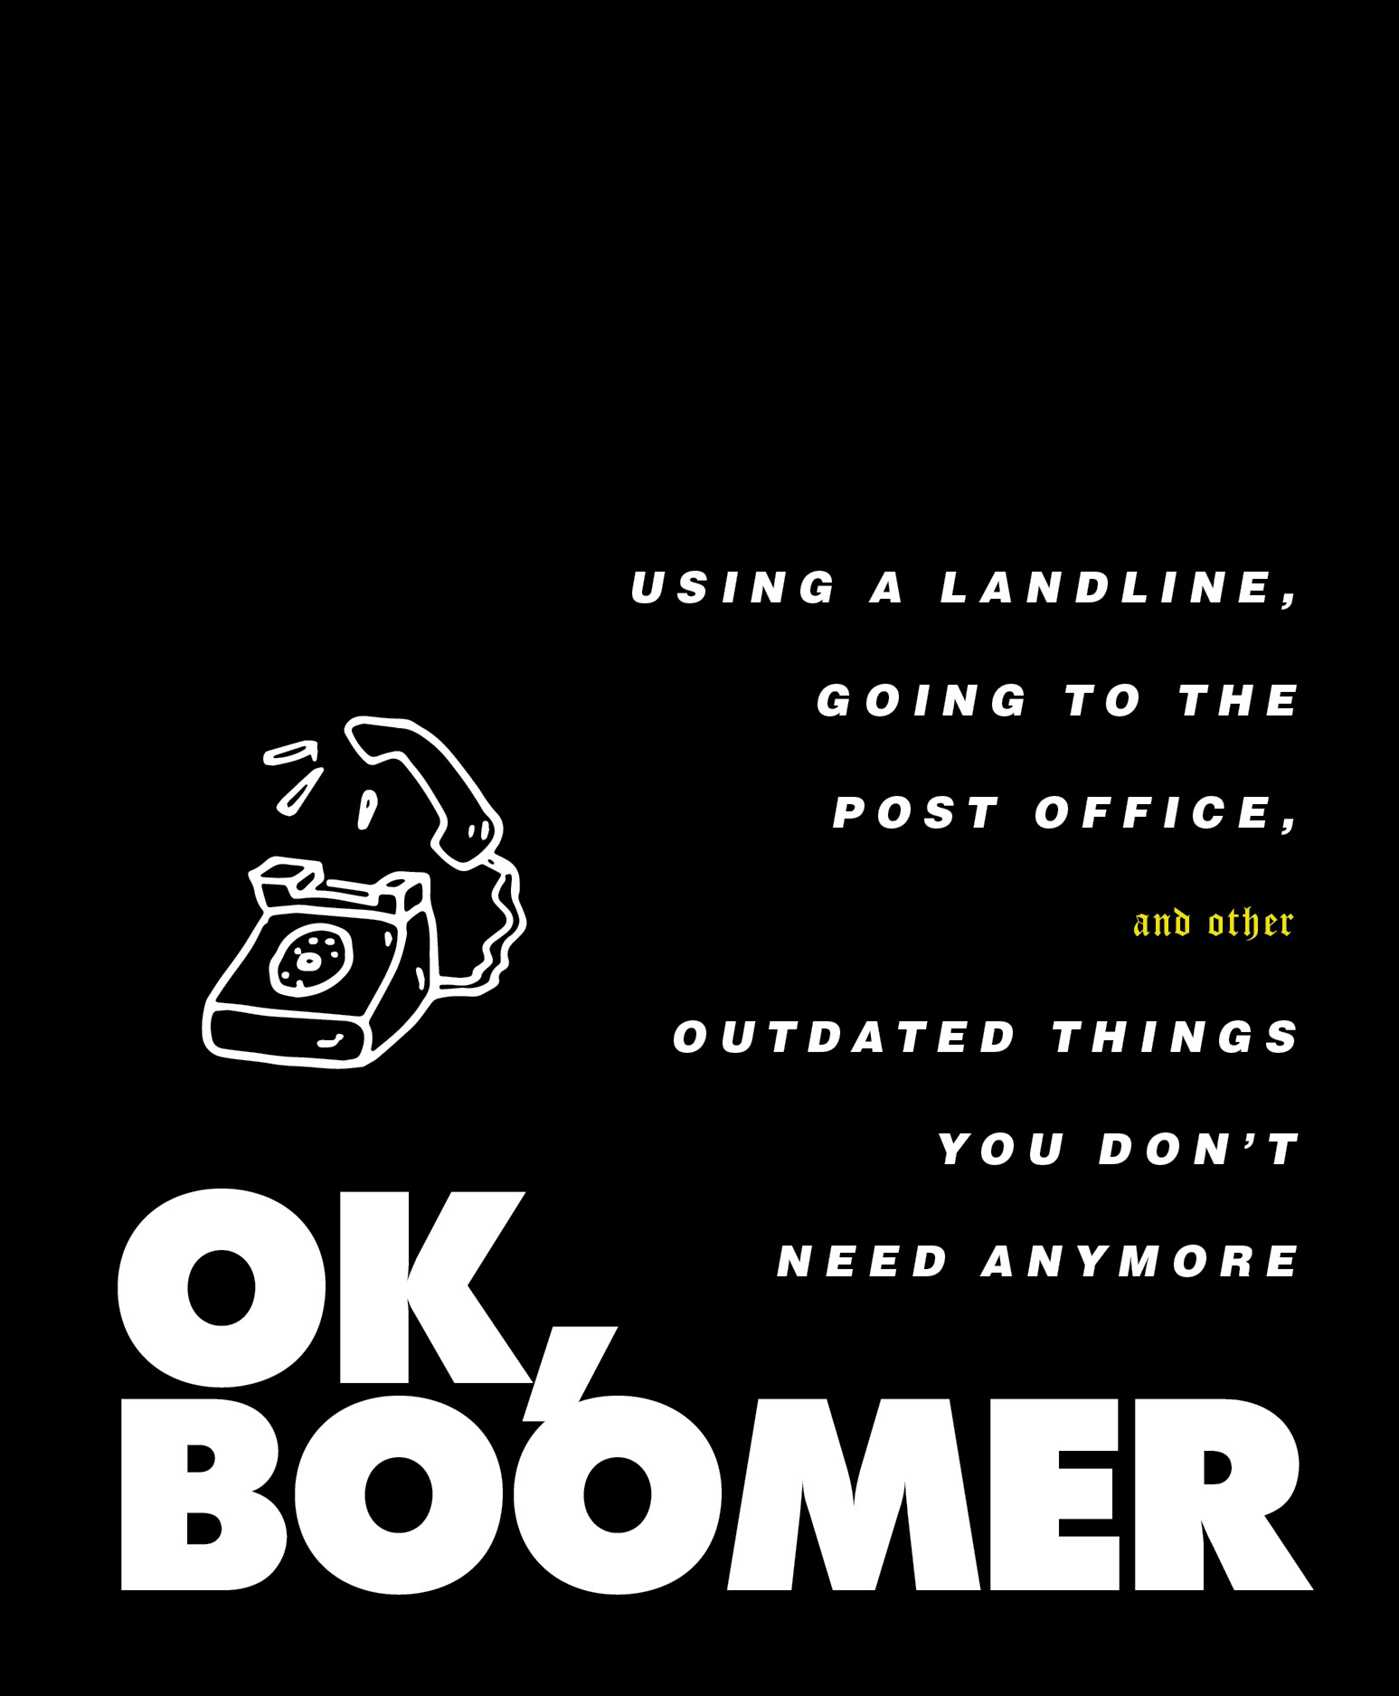 OK, Boomer: Using a Landline, Going to the Post Office, and Other Outdated Things You Don't Need Anymore